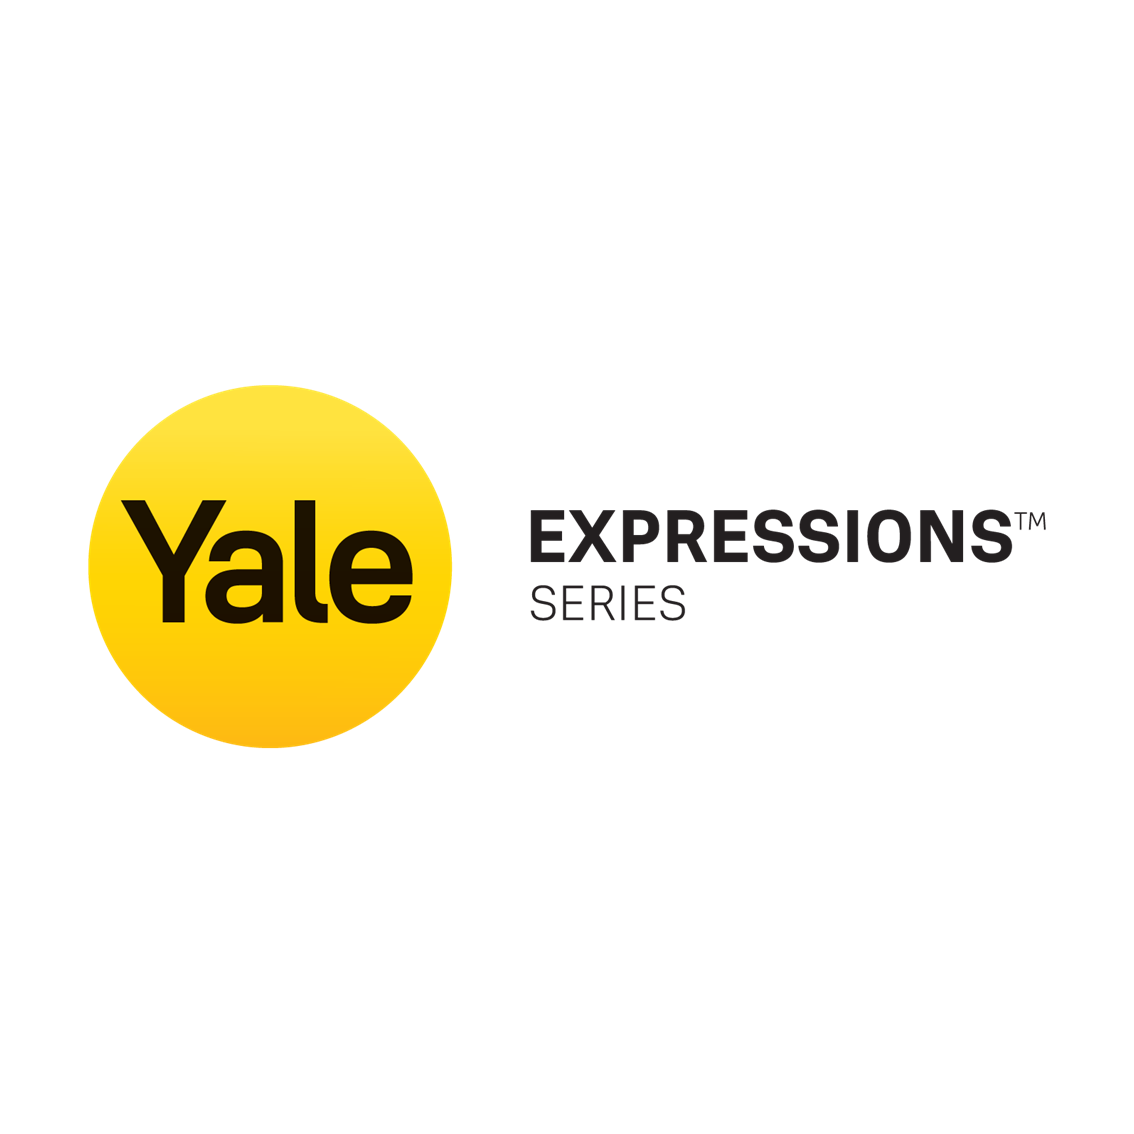 Yale Expressions